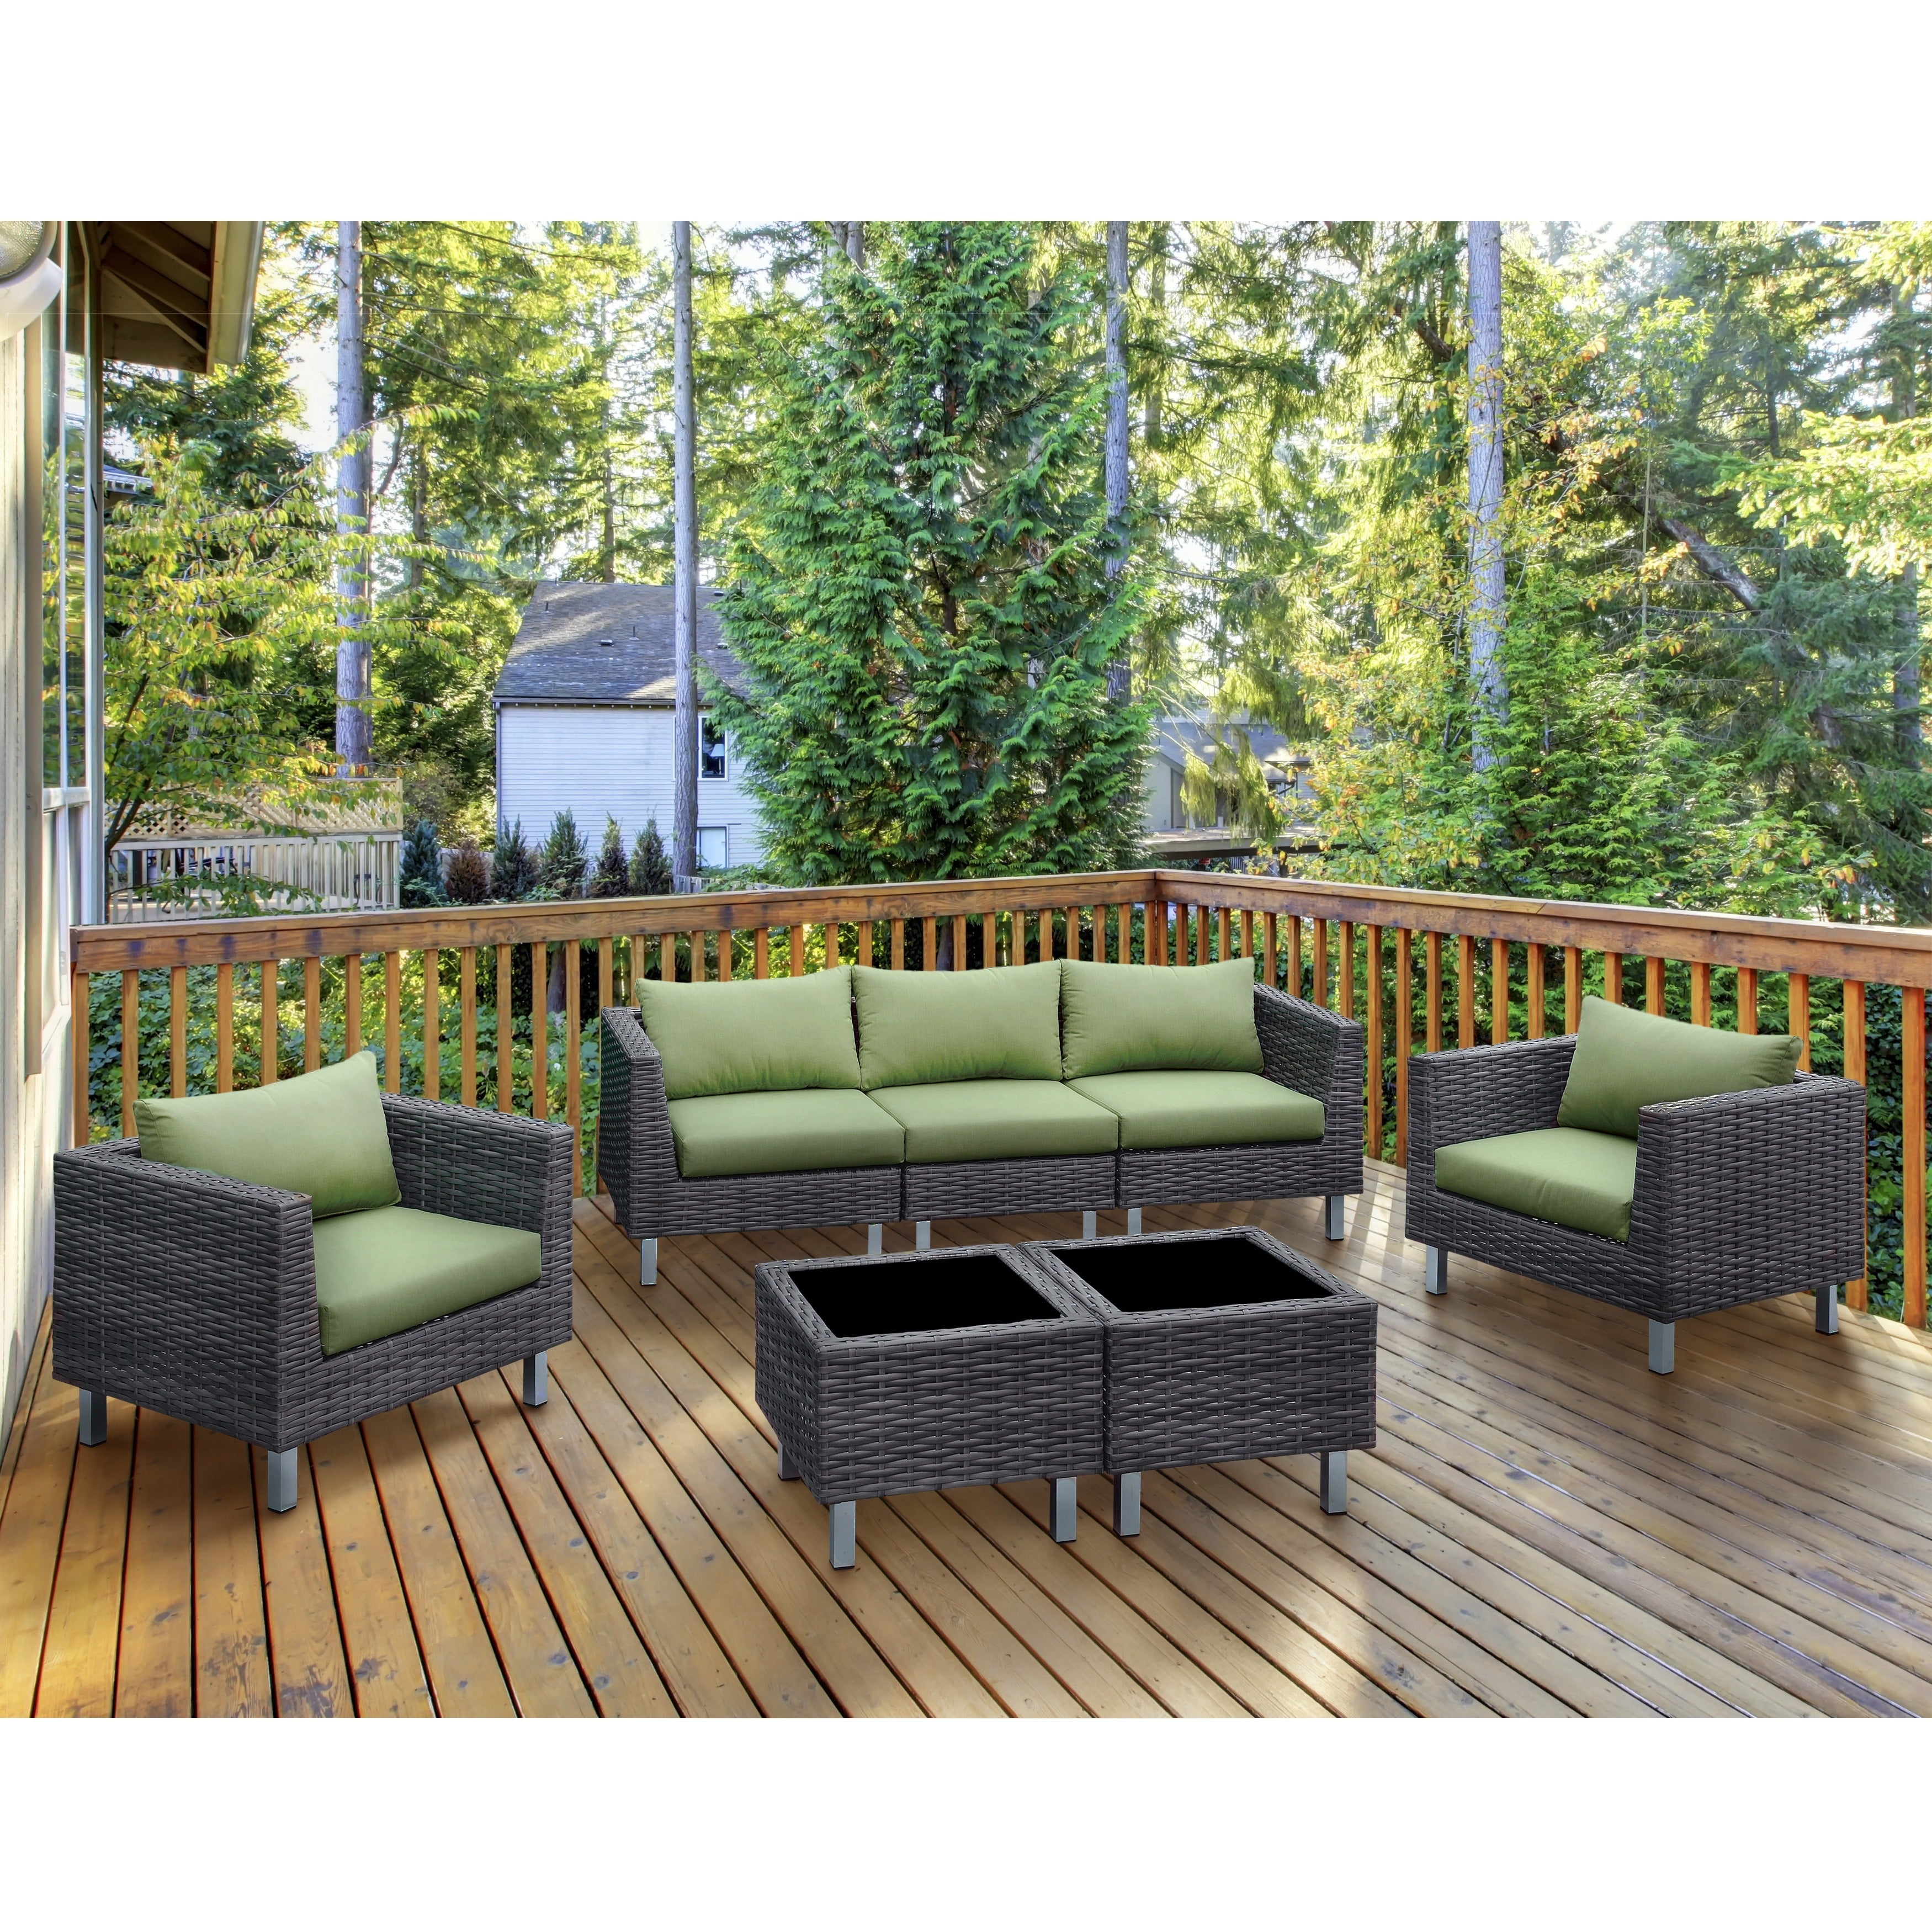 Furniture Of America Baja Contemporary 7 Piece Weather Resistant Patio Seating And Table Set Overstock 12675236